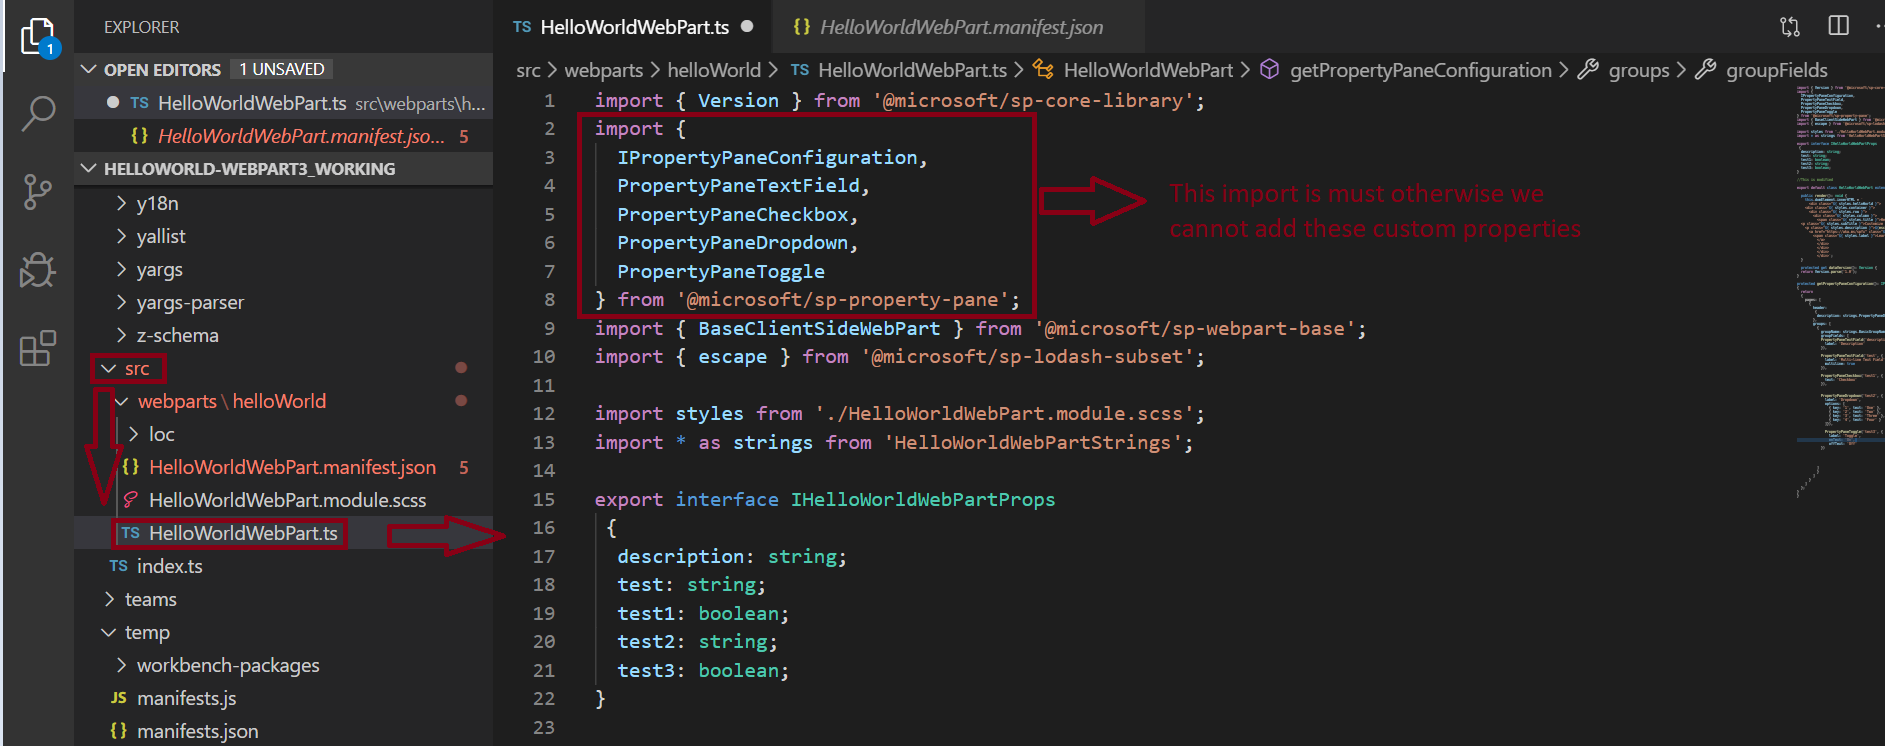 Import microsoft-sp-property-pane for the custom property